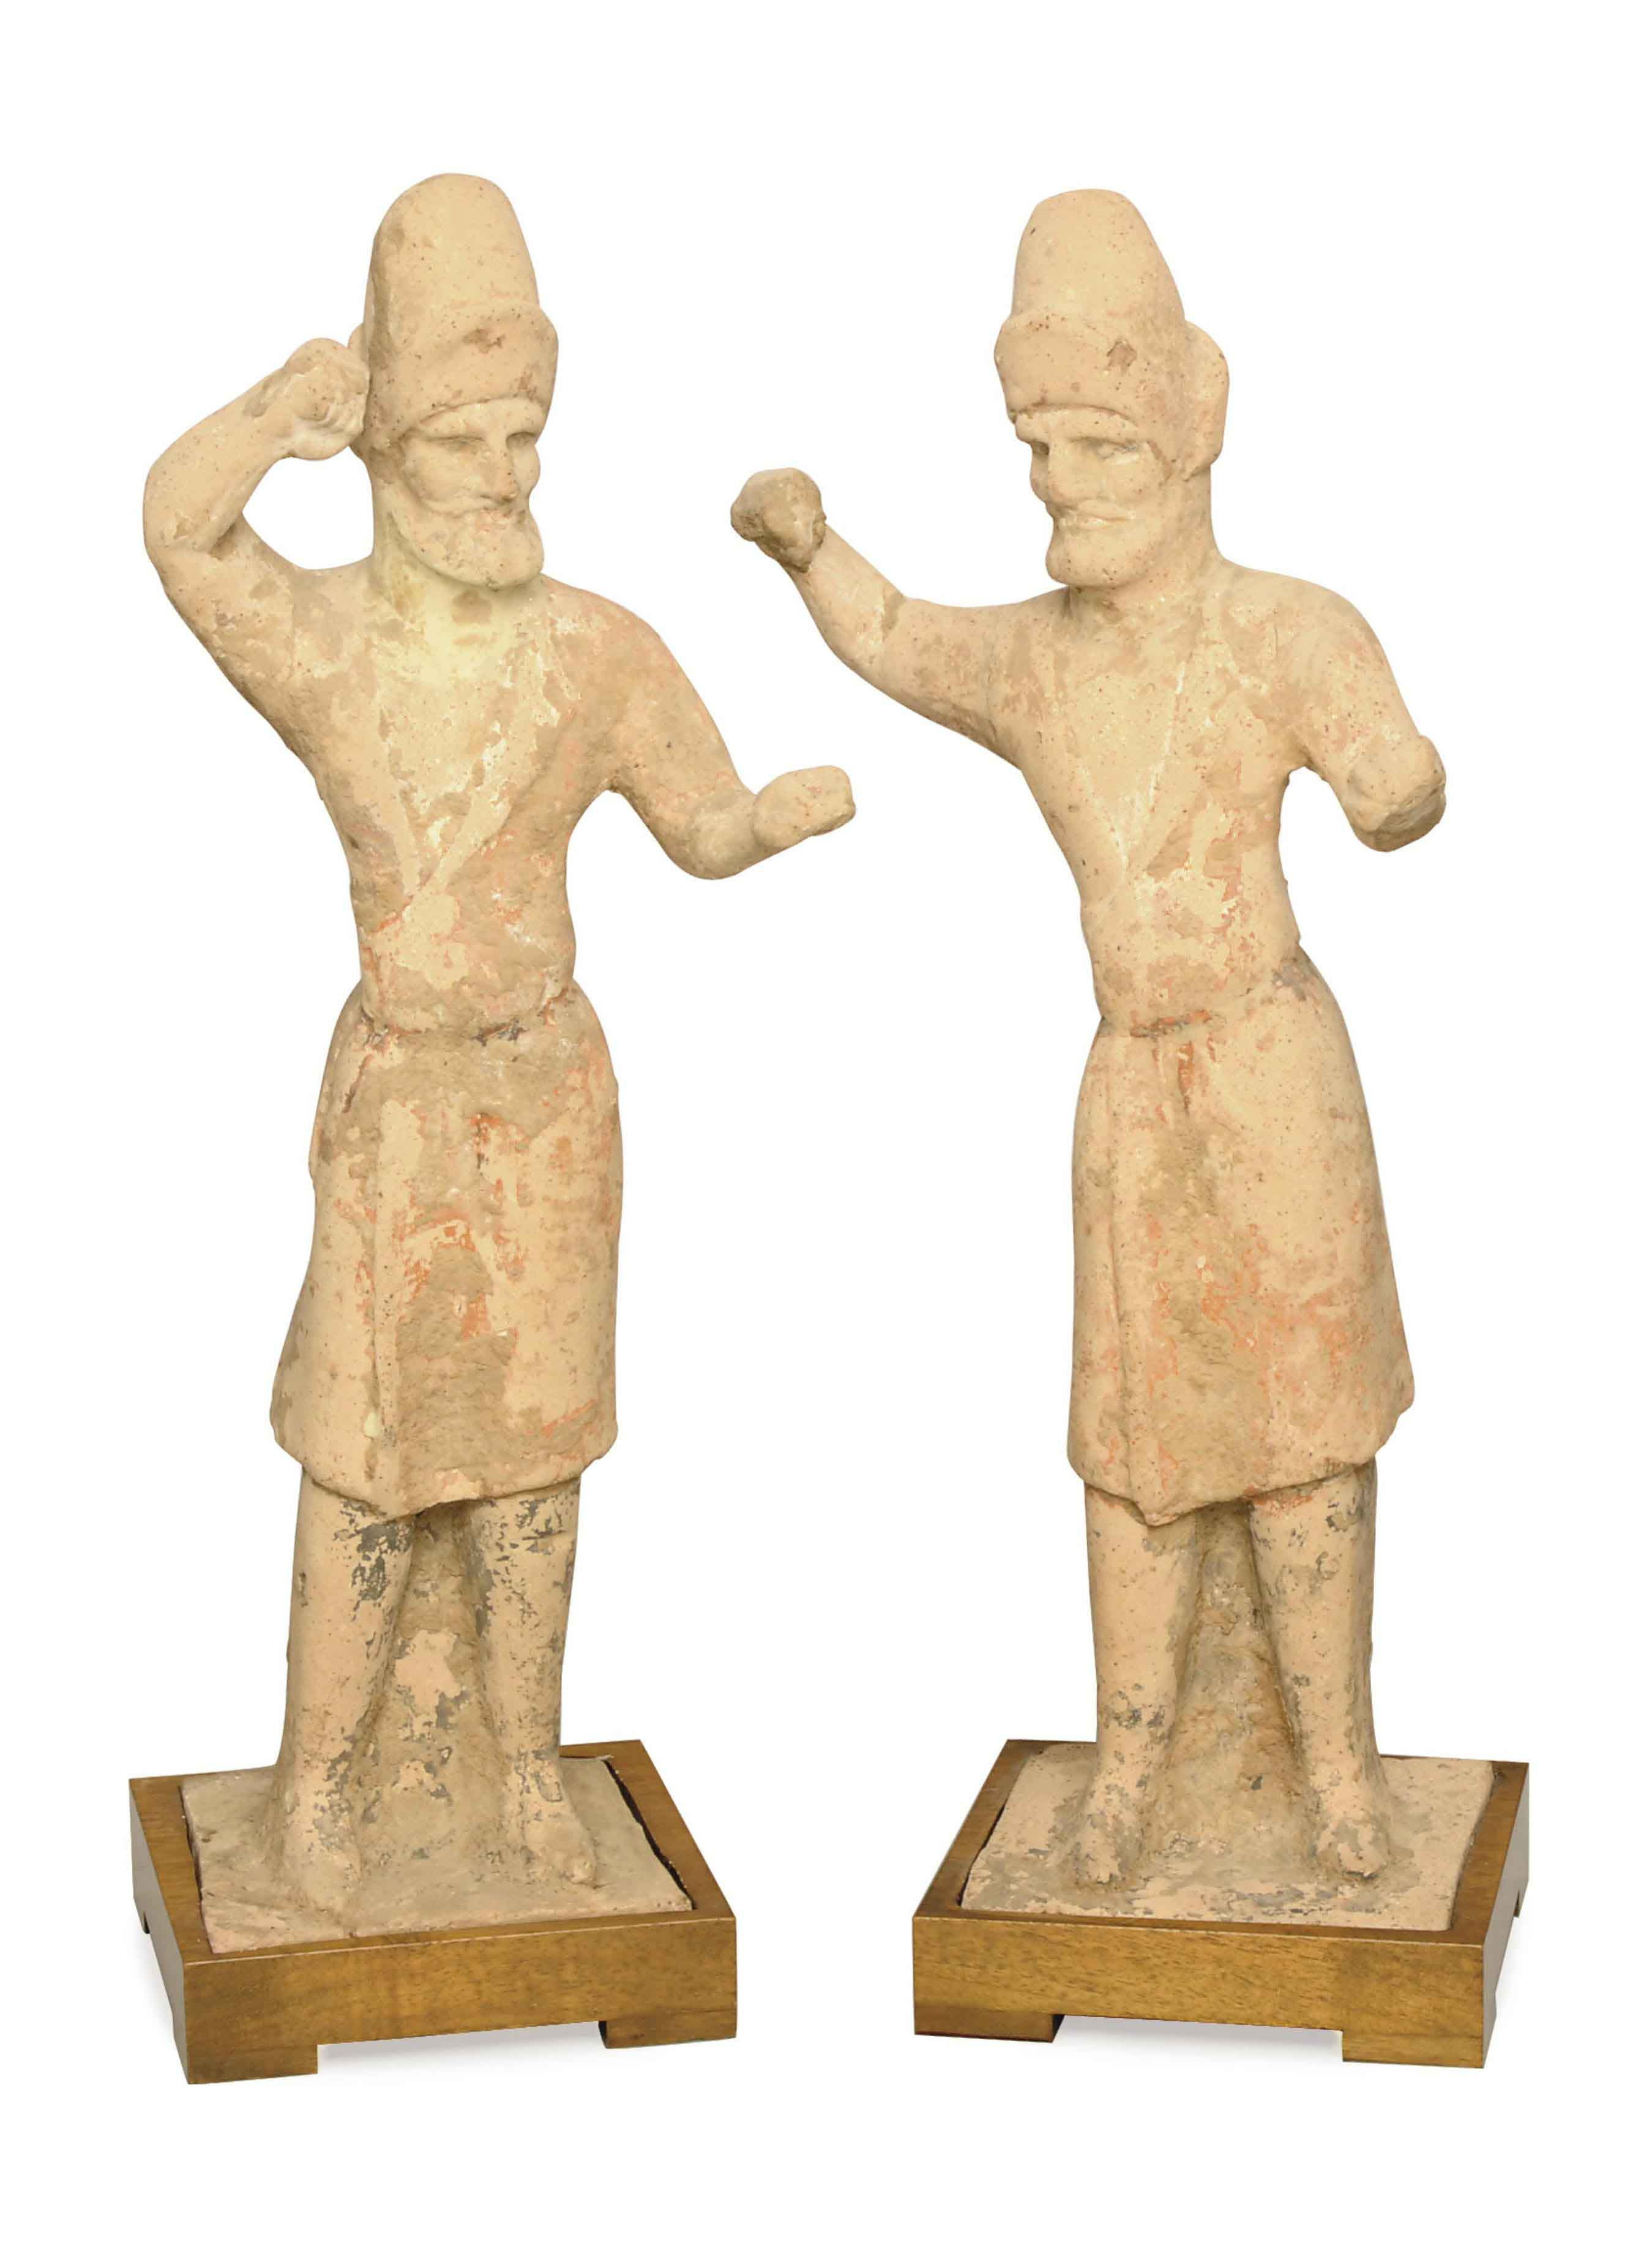 TWO CHINESE PAINTED POTTERY FIGURES OF GROOMS,